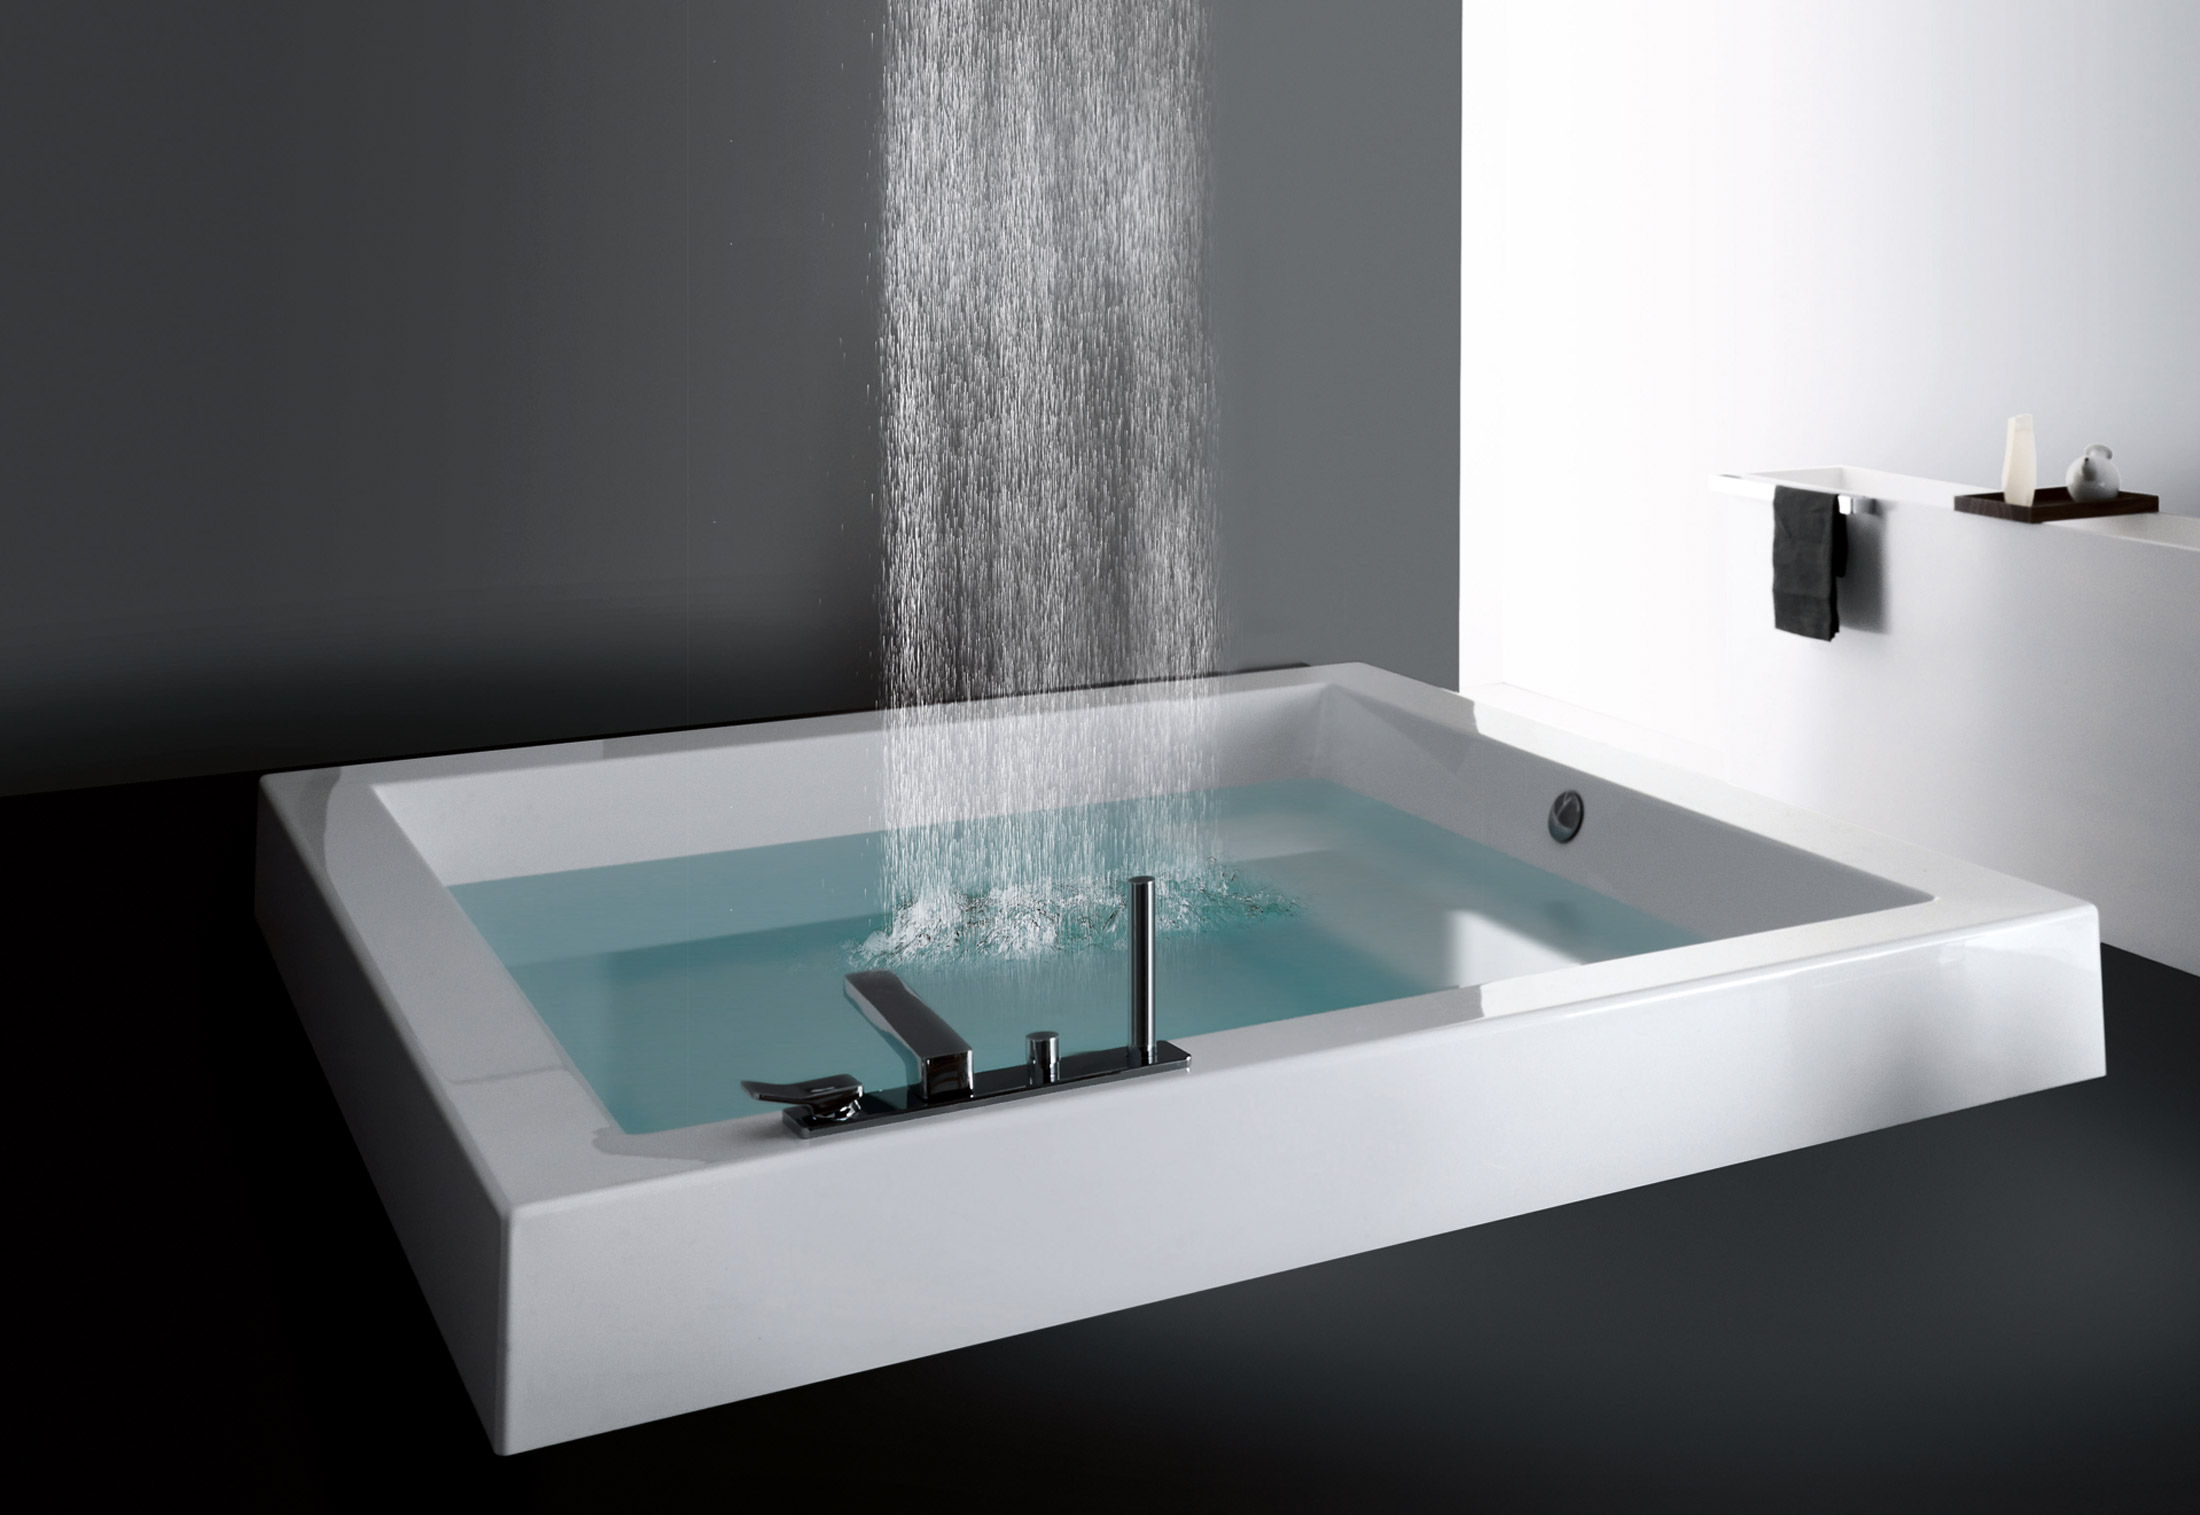 Cabinas De Ducha Kos:Shower Tub with Waterfall